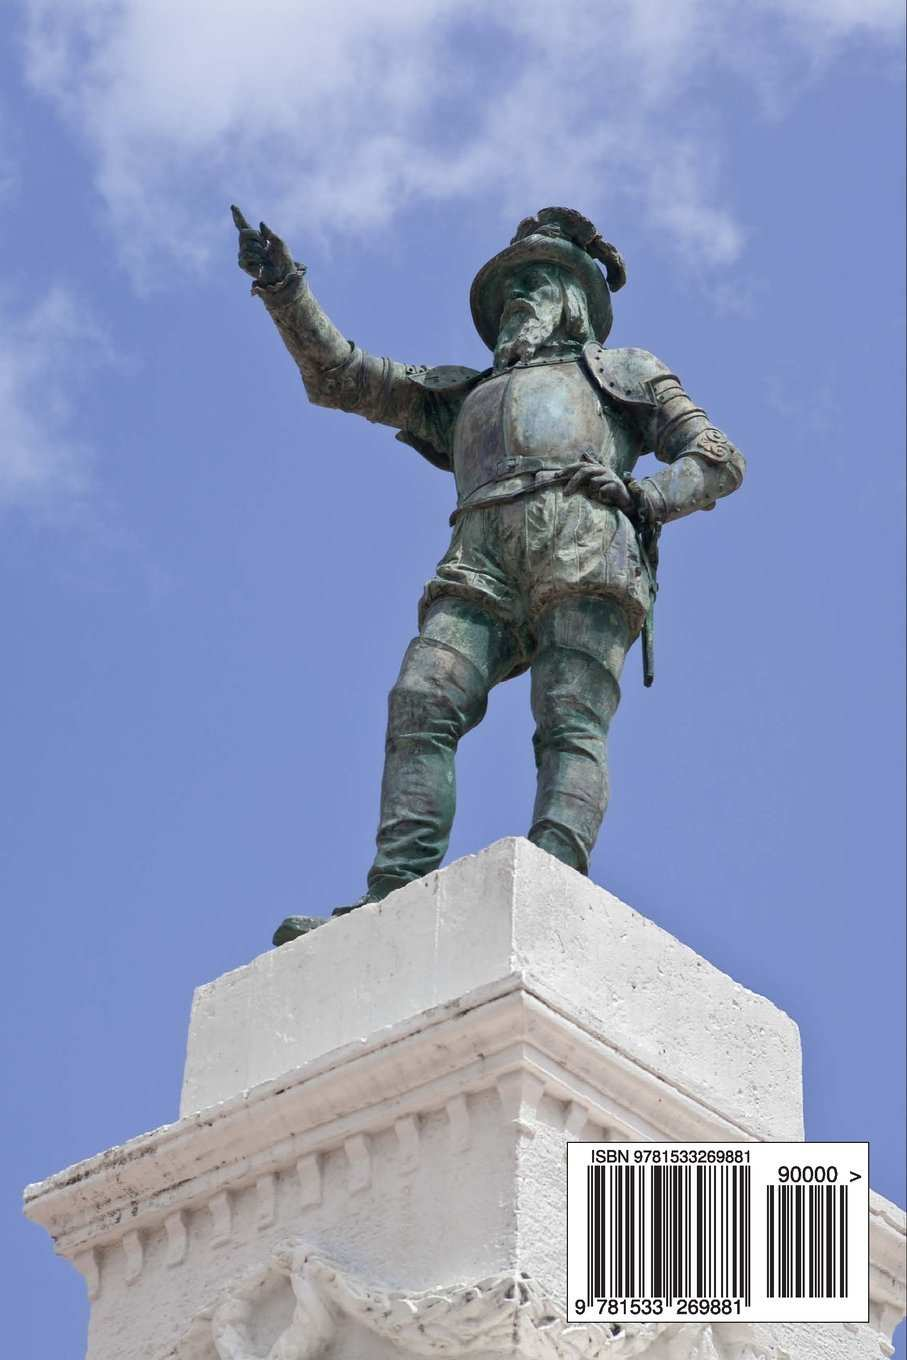 Top 15 Most Famous Statues